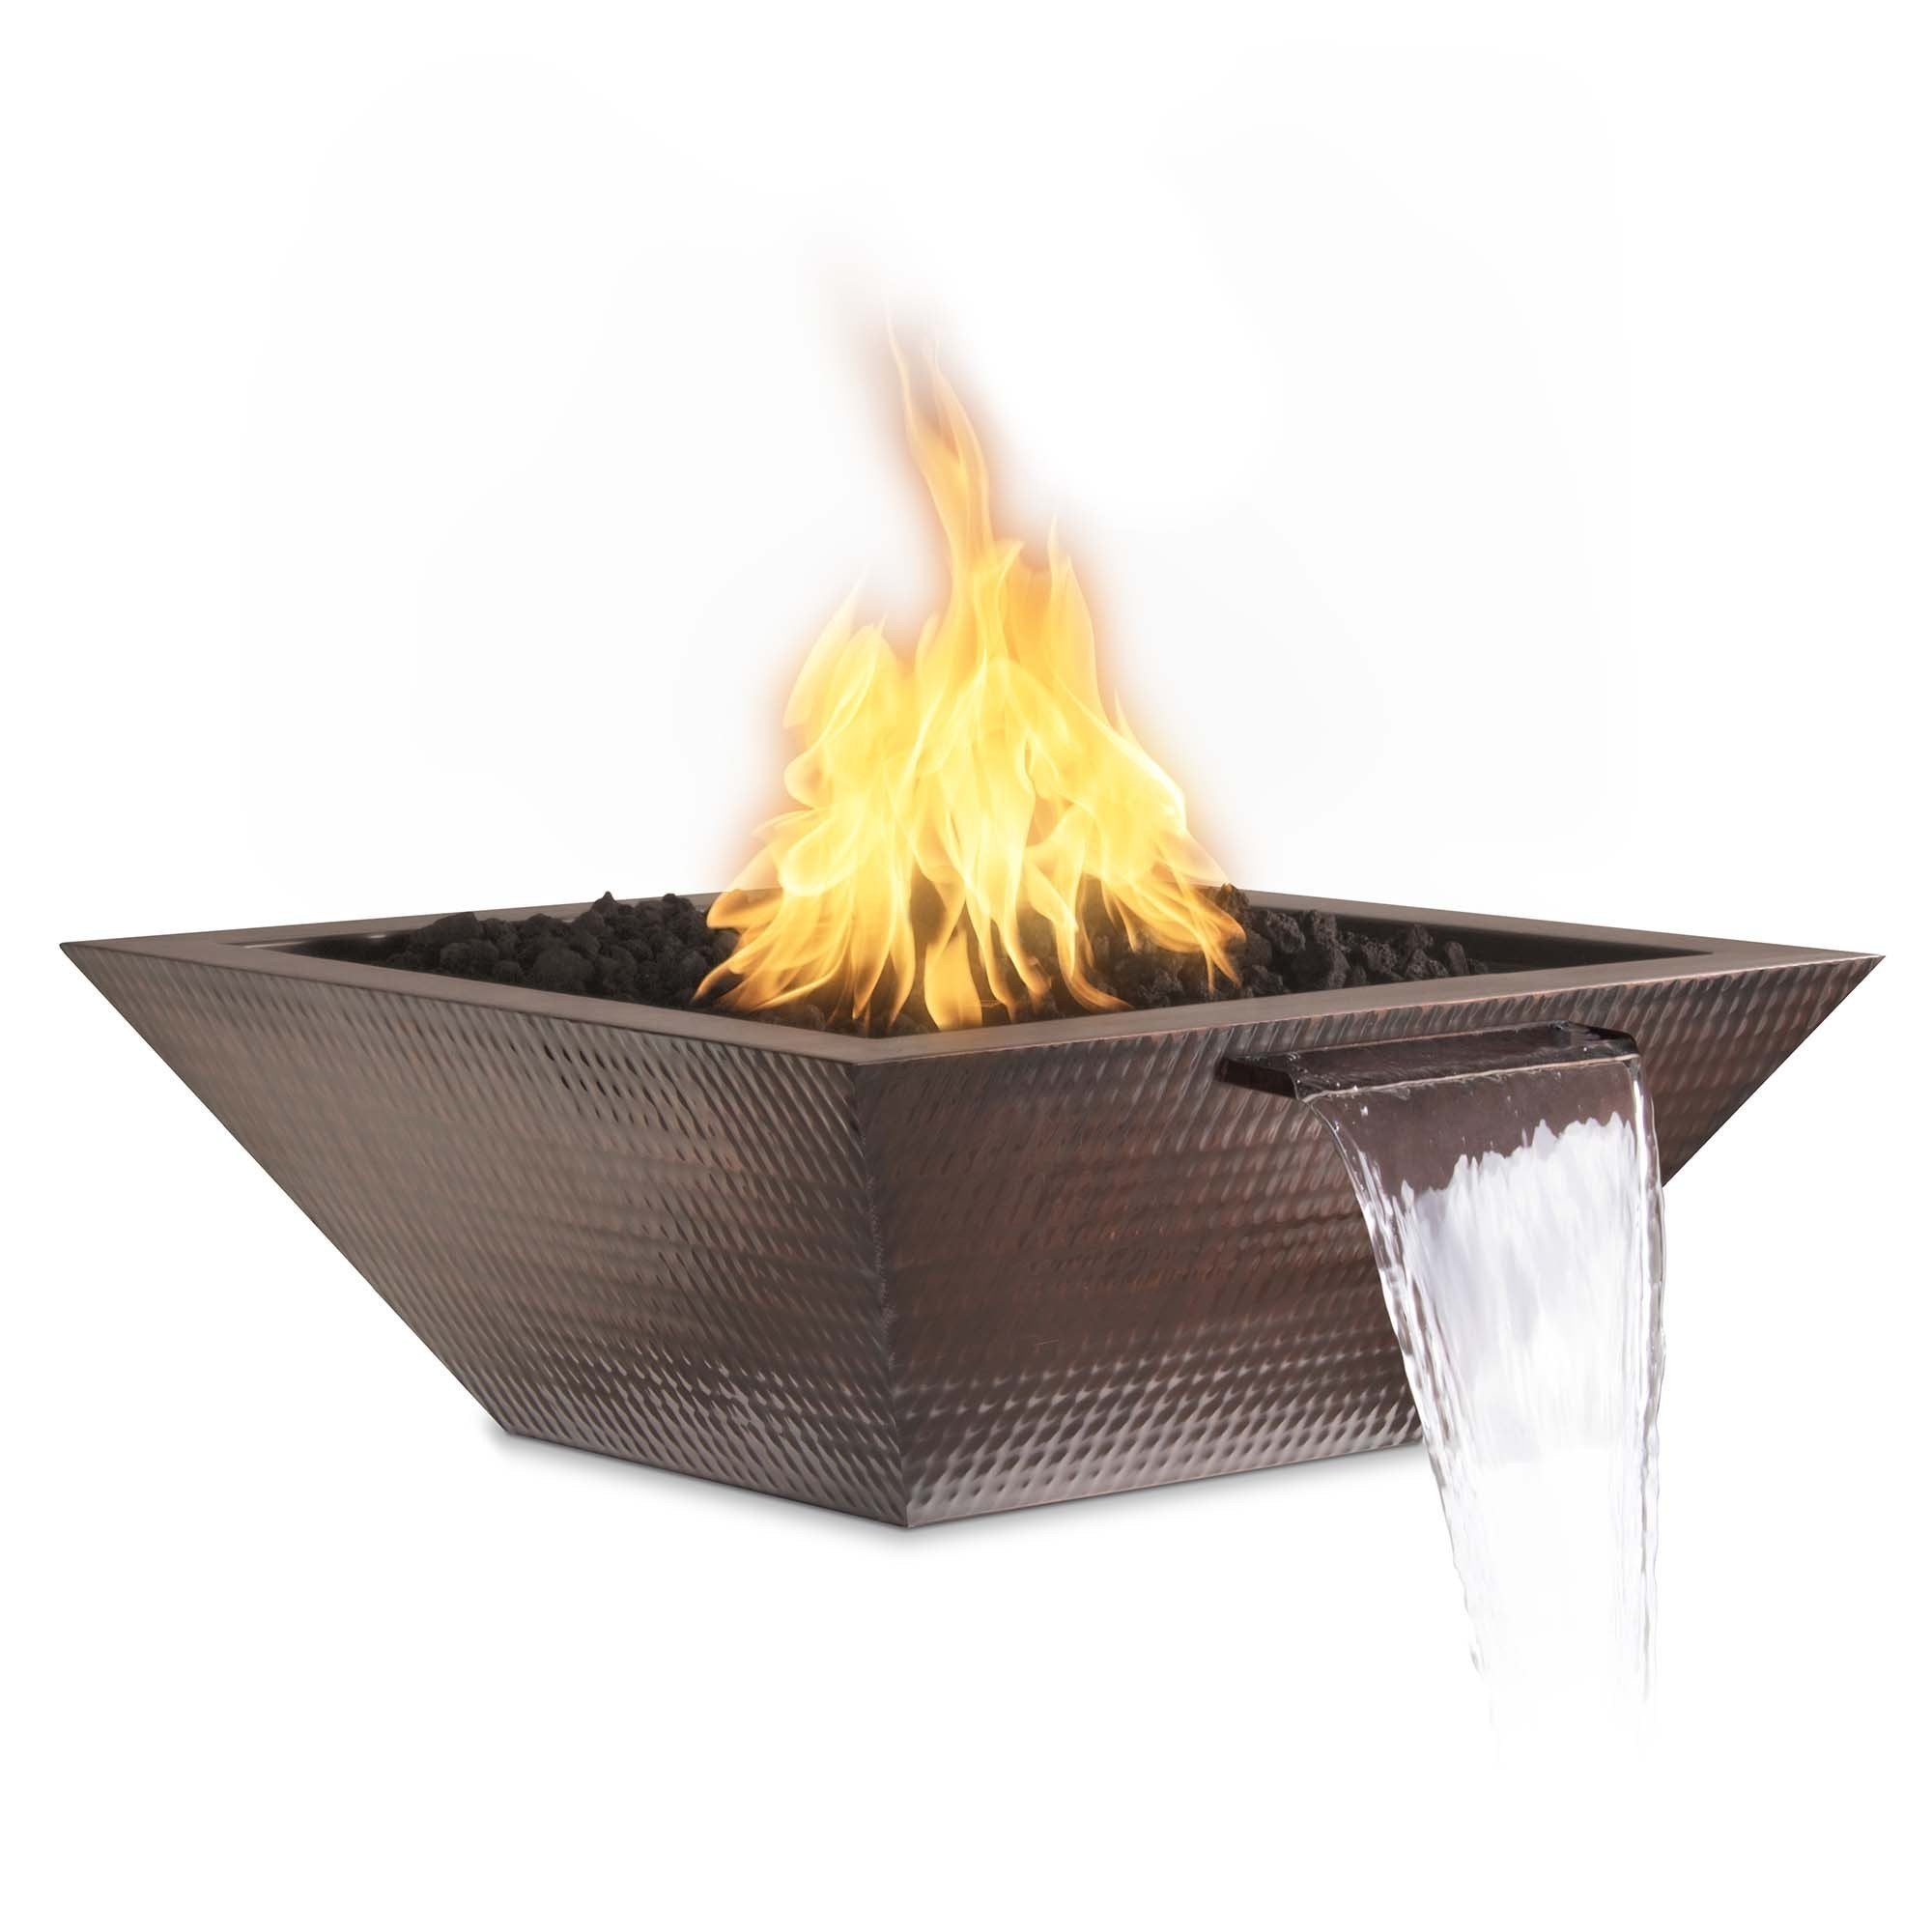 "TOP Fires by The Outdoor Plus Maya Hammered Patina Copper Fire & Water Bowl 36"" - Fire Pit Oasis"